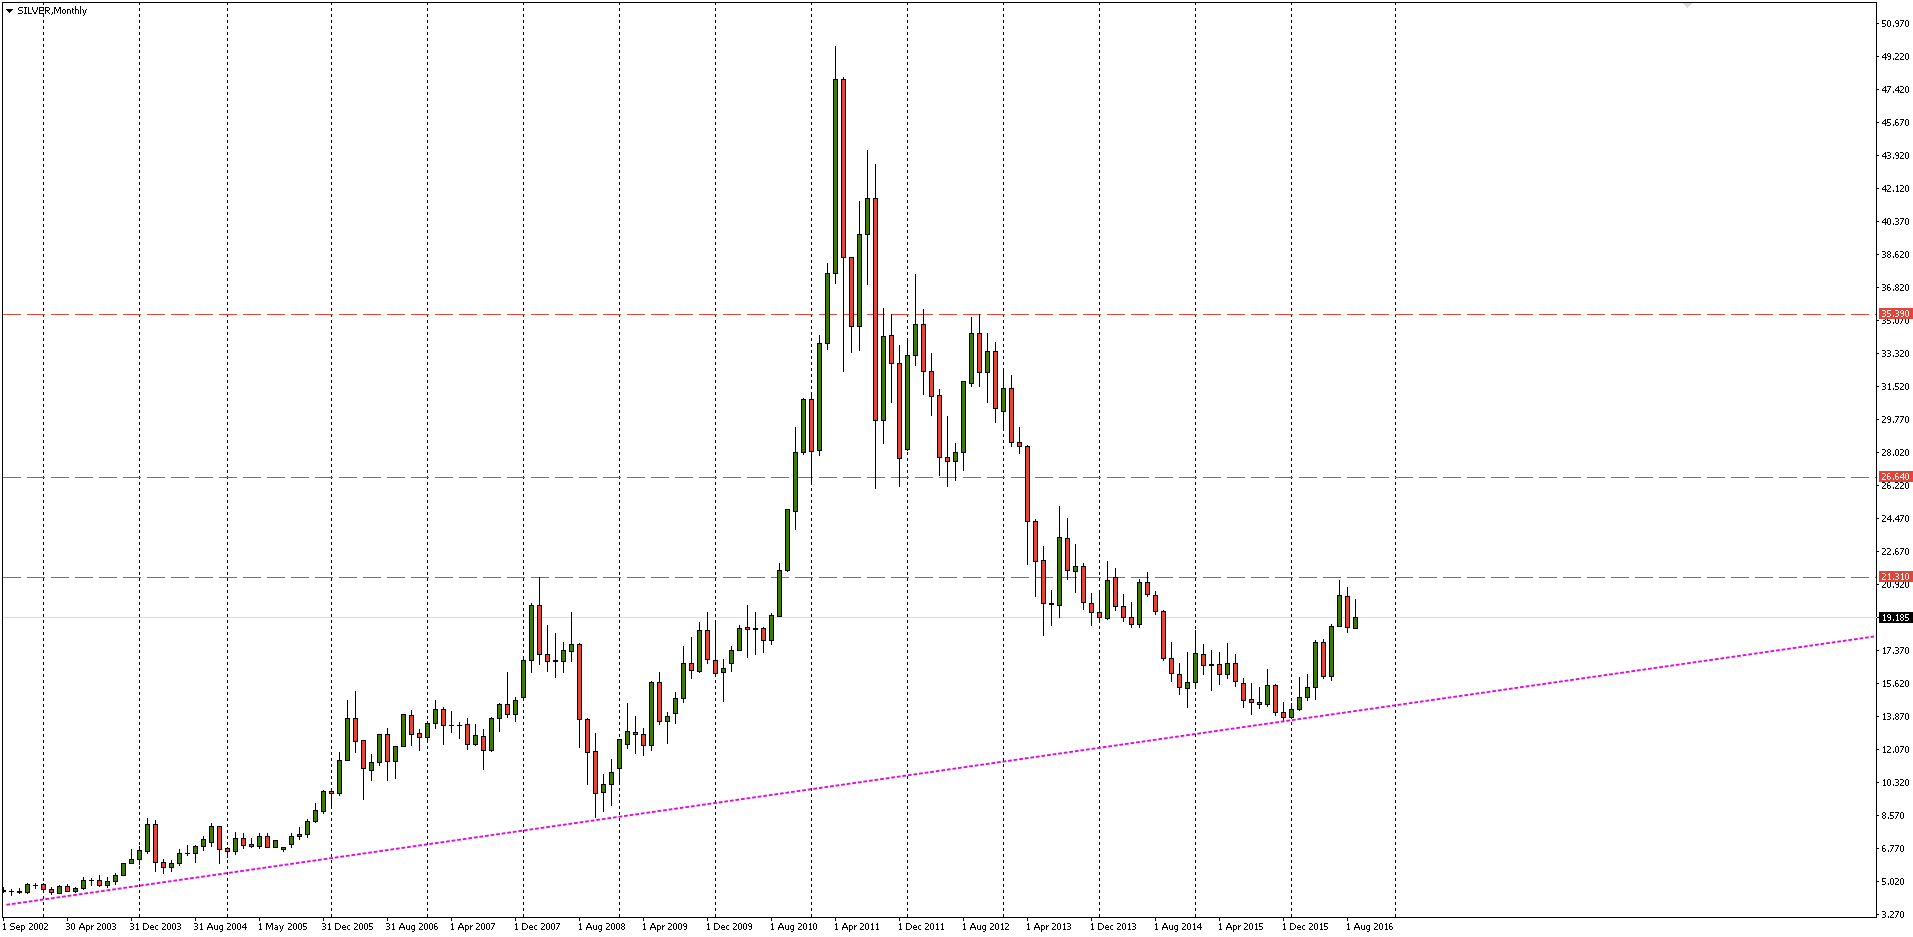 SILVER Monthly